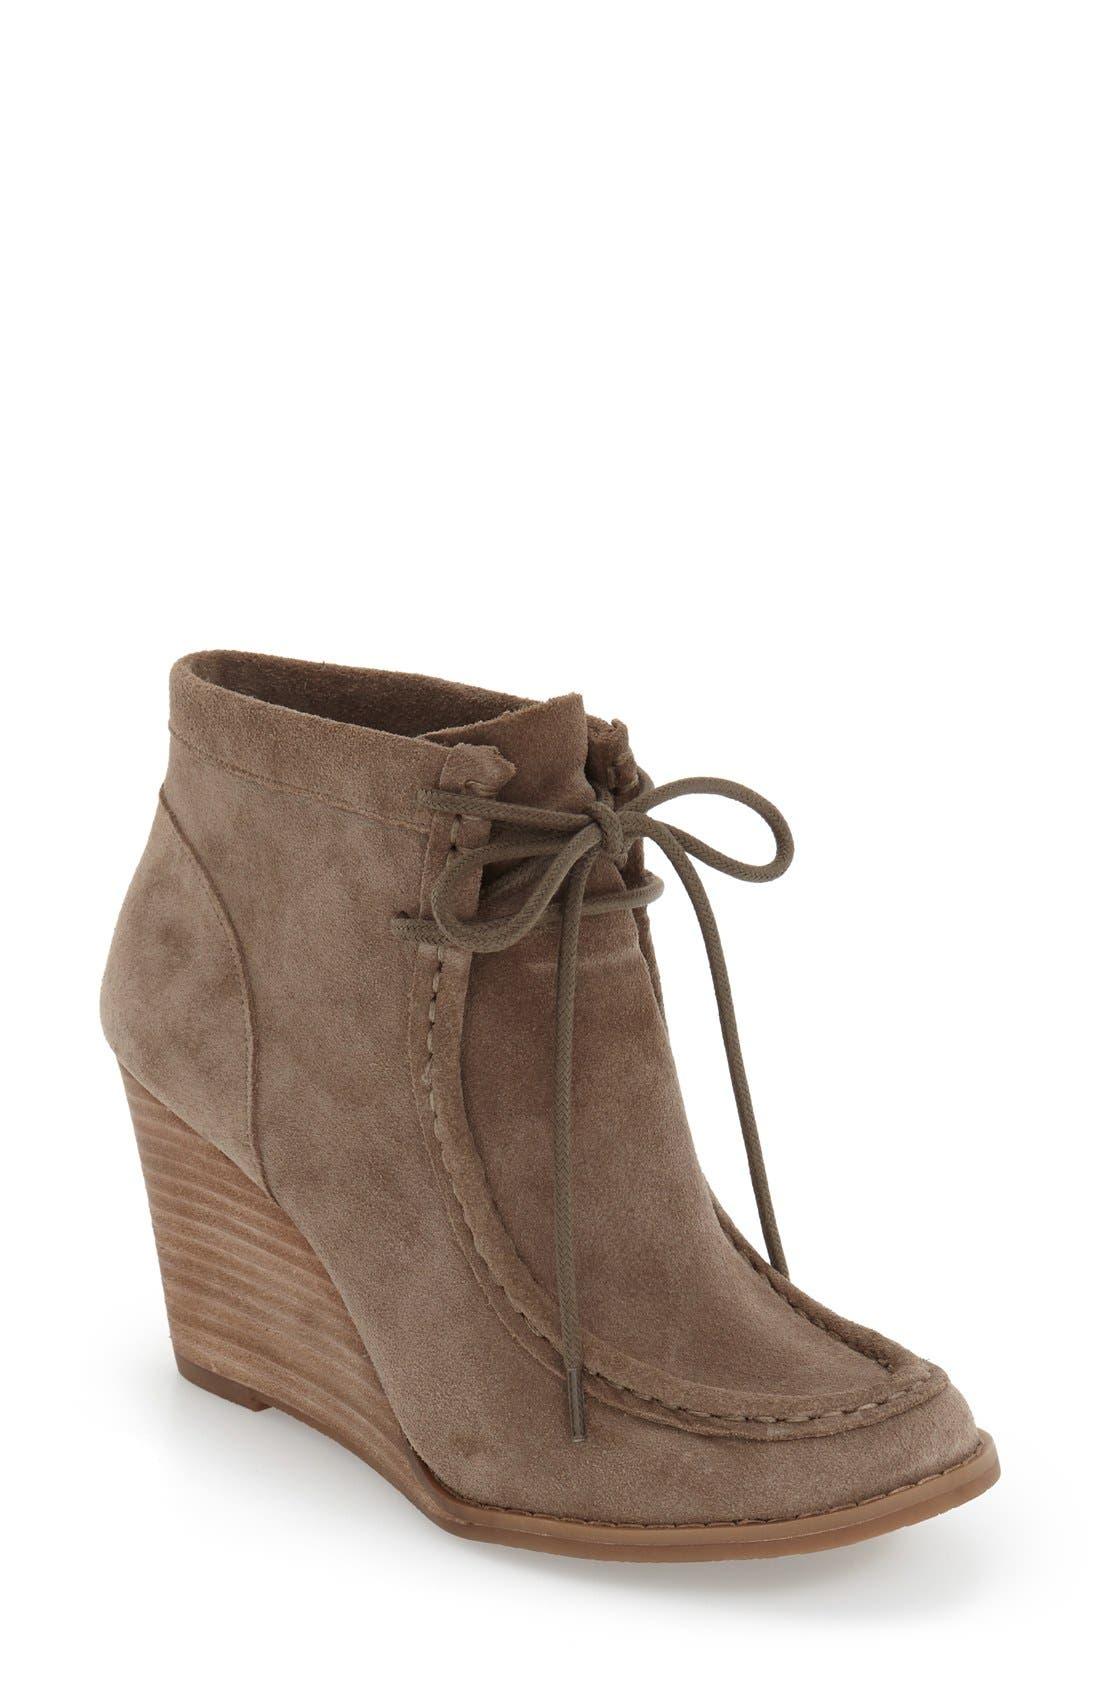 Main Image - Lucky Brand 'Ysabel' Wedge Chukka Boot (Women)